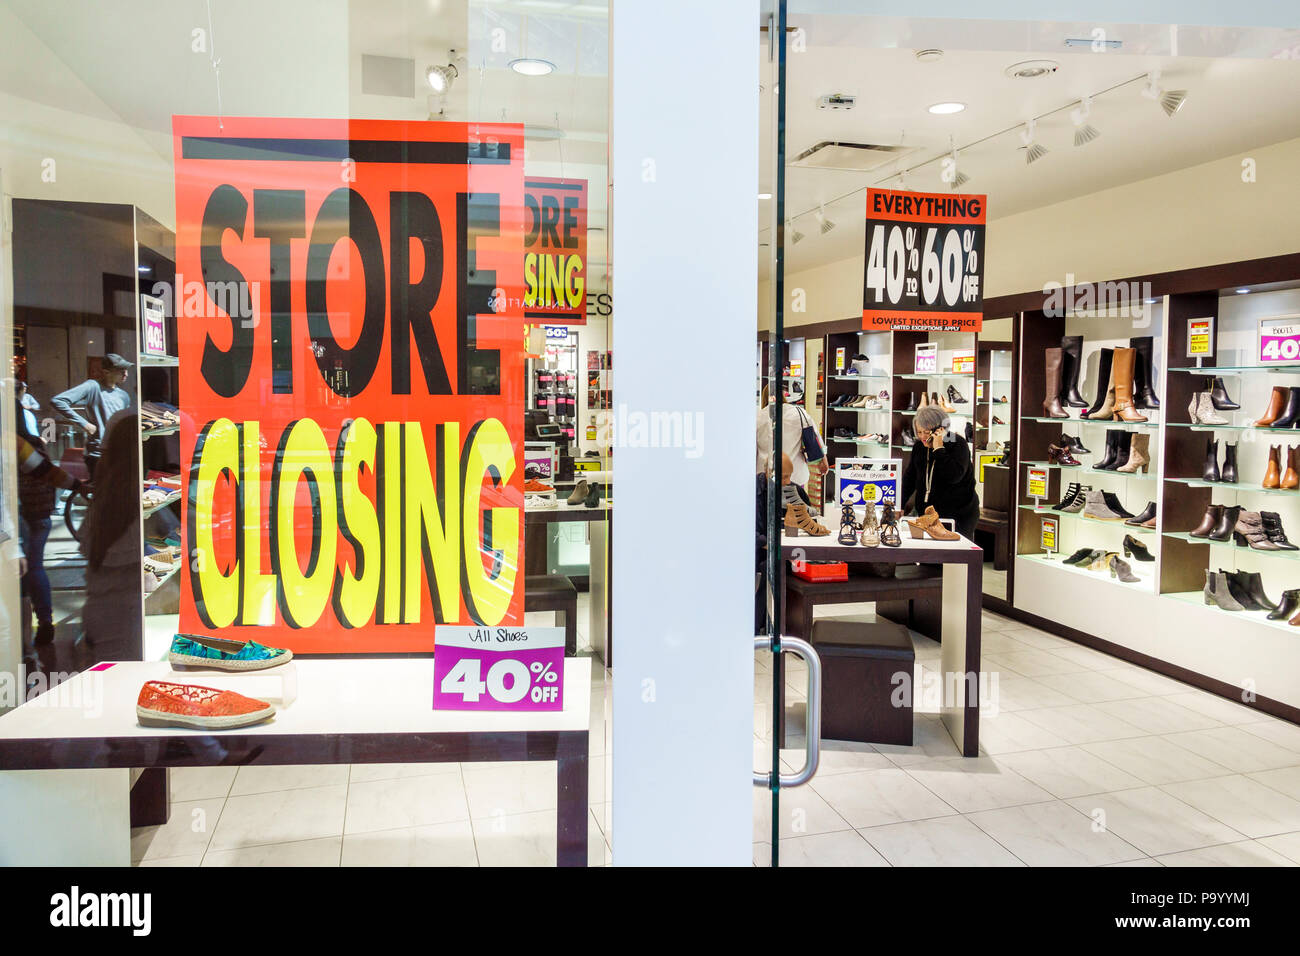 Orlando Florida The Mall at Millenia shopping Aerosoles shoe store store closing sale liquidation sign discount interior - Stock Image